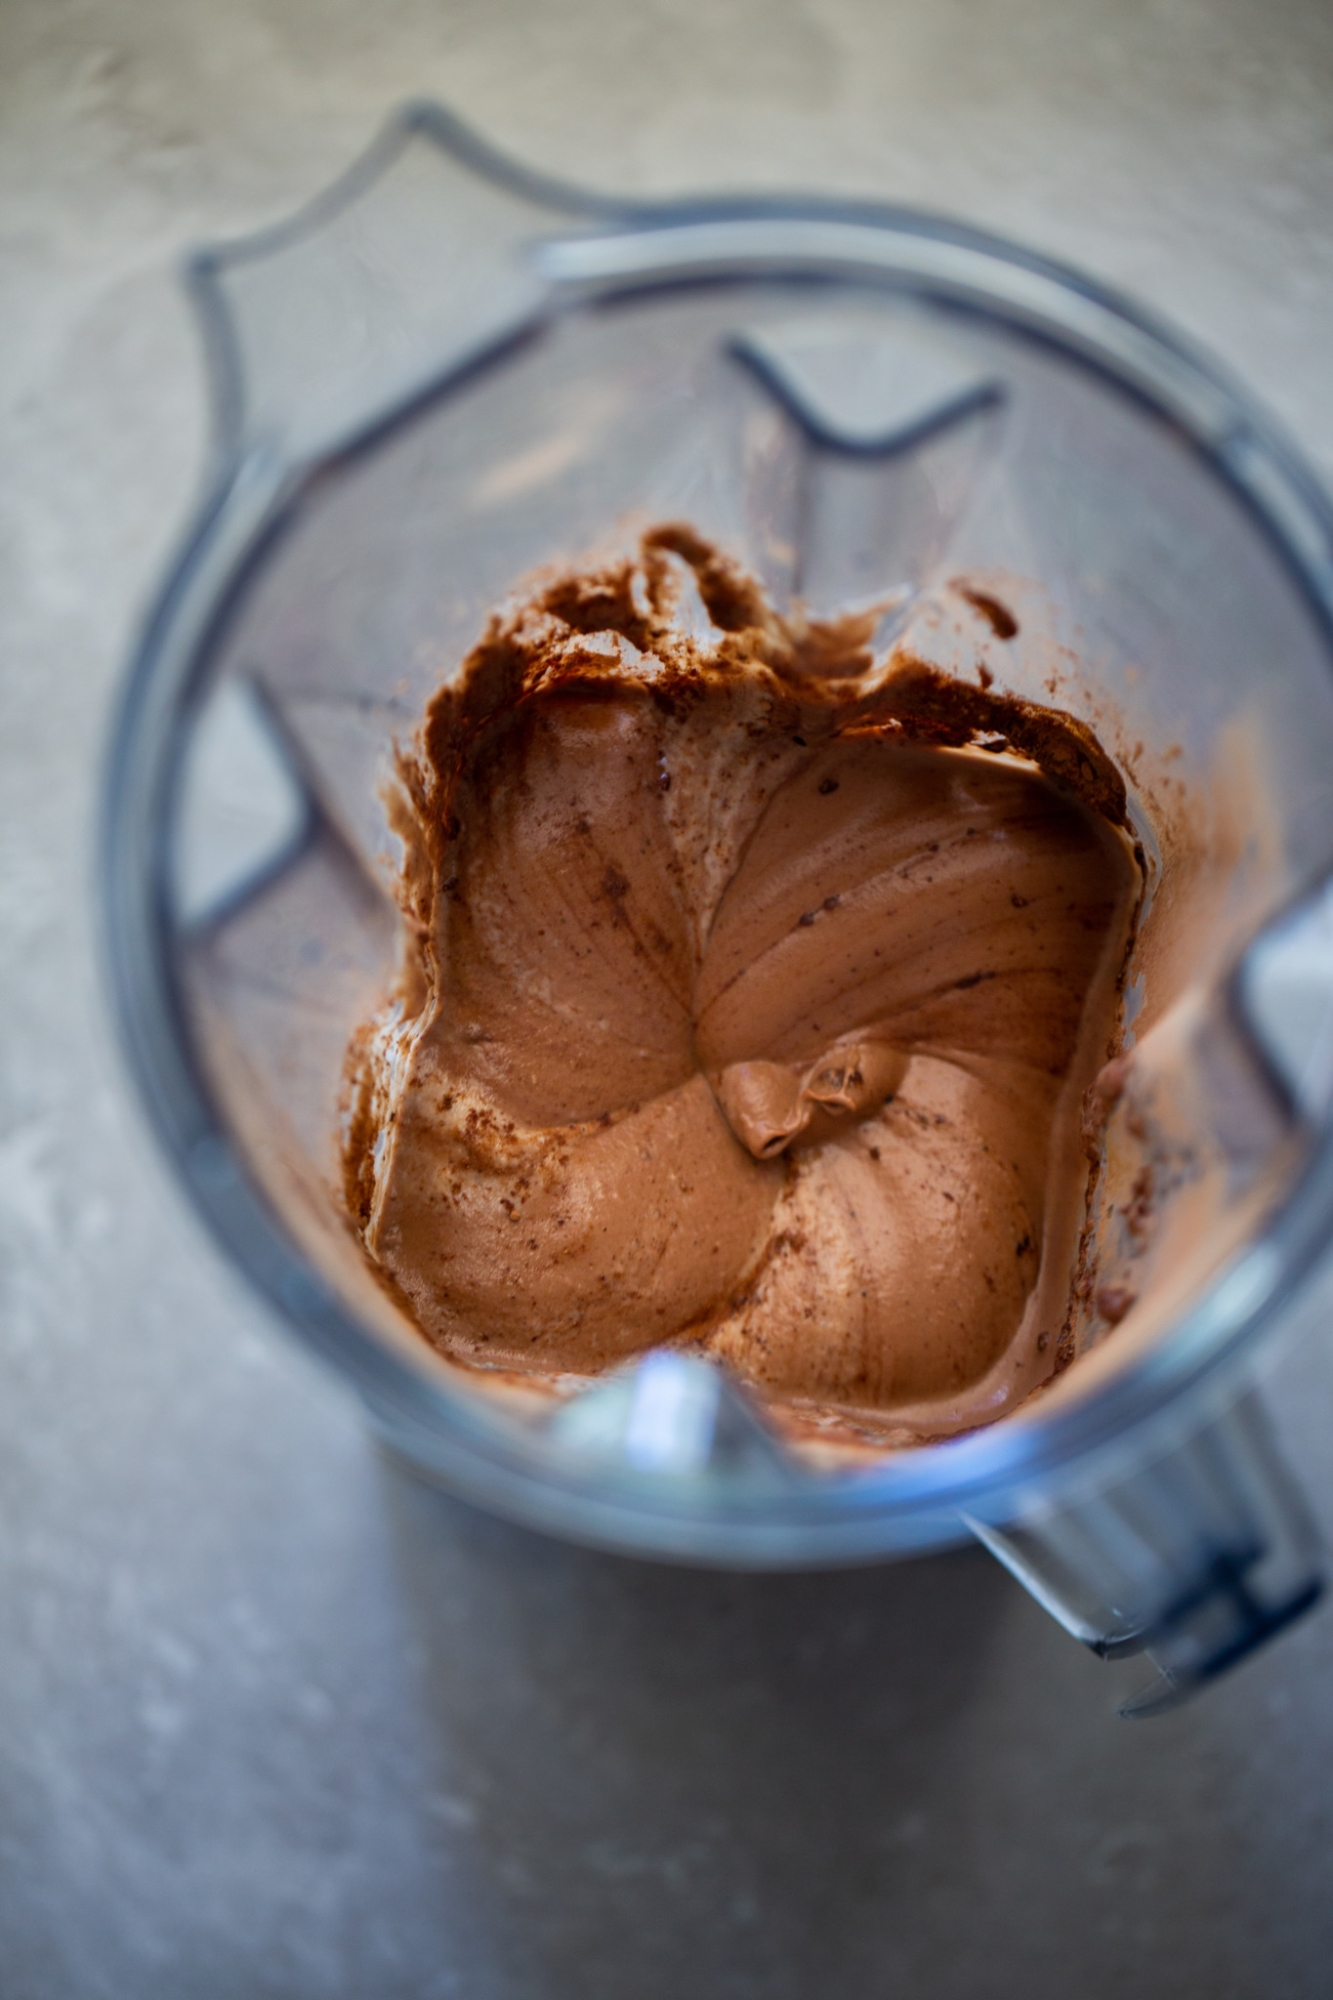 cashew chocolate mousse in the blender